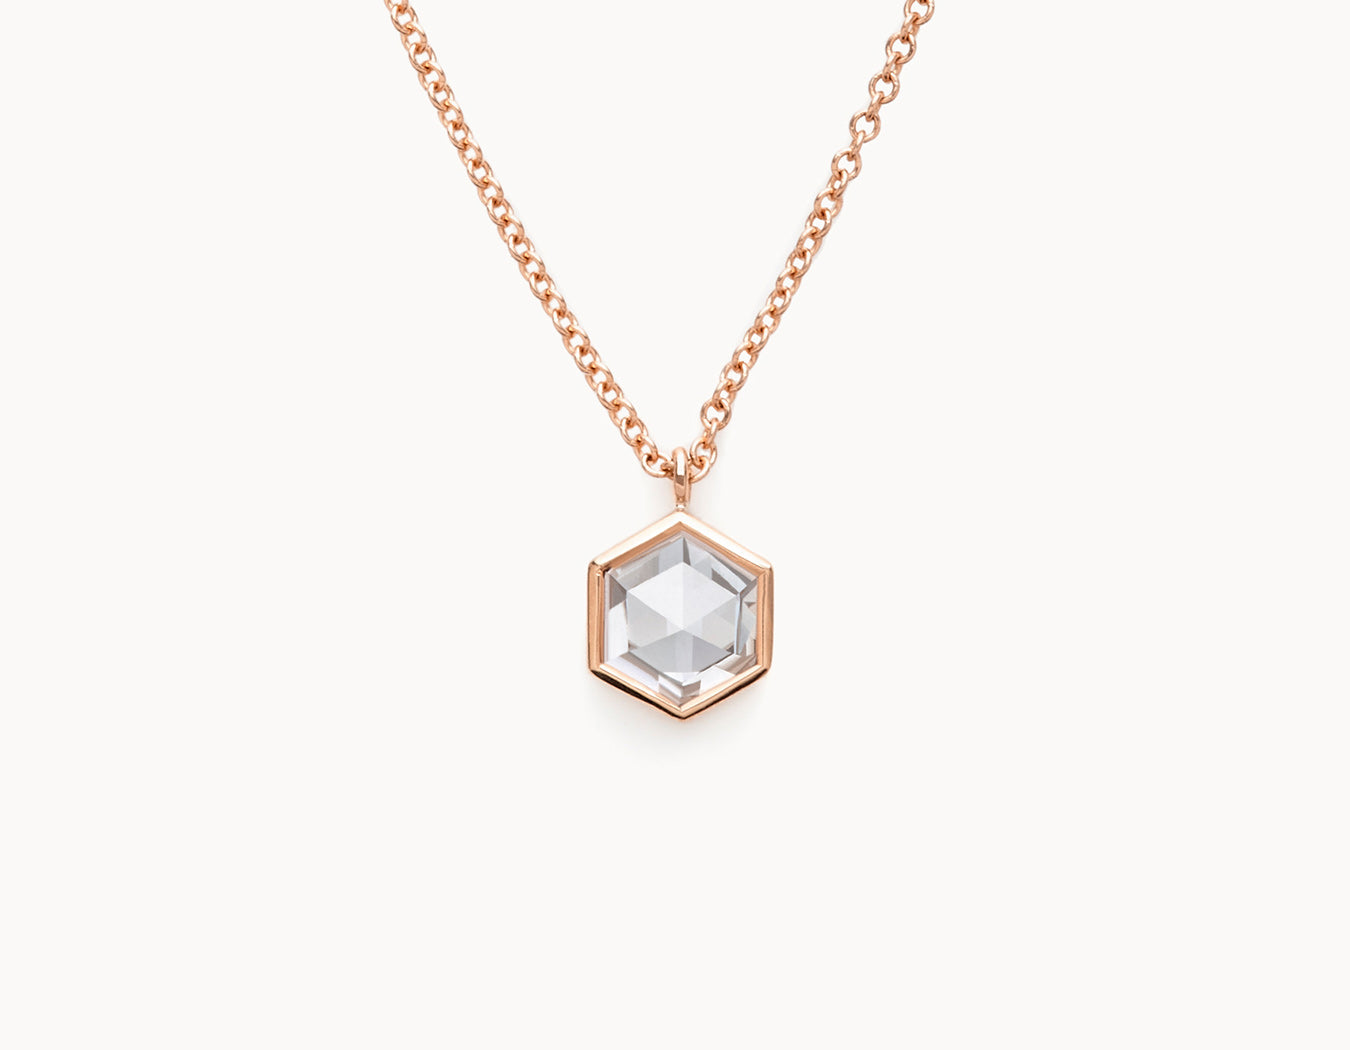 The Rose-Cut Hex Necklace